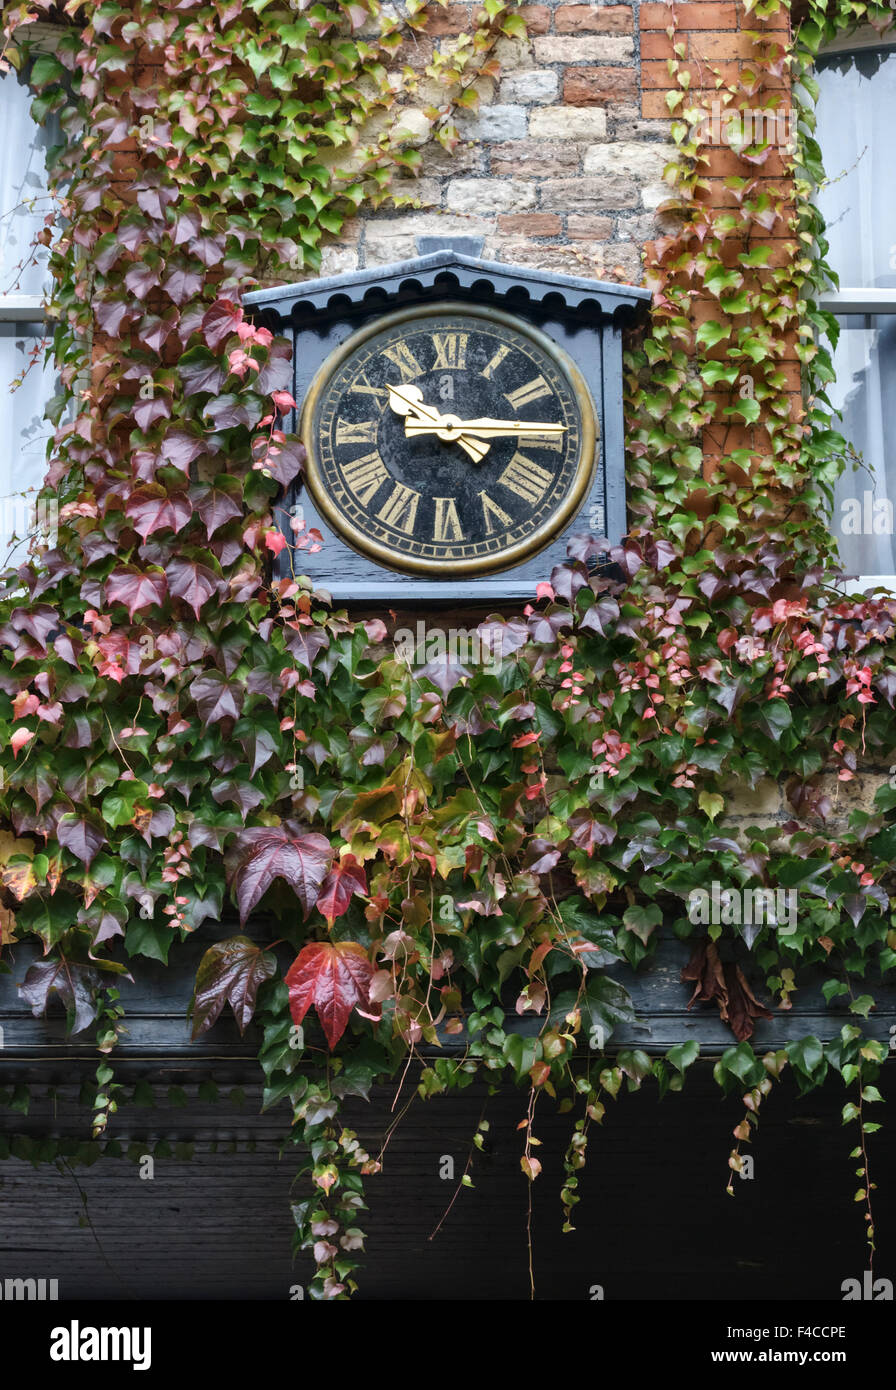 Wells, Somerset, UK. A clock at The Swan Hotel surrounded by Virginia Creeper in autumn - Stock Image